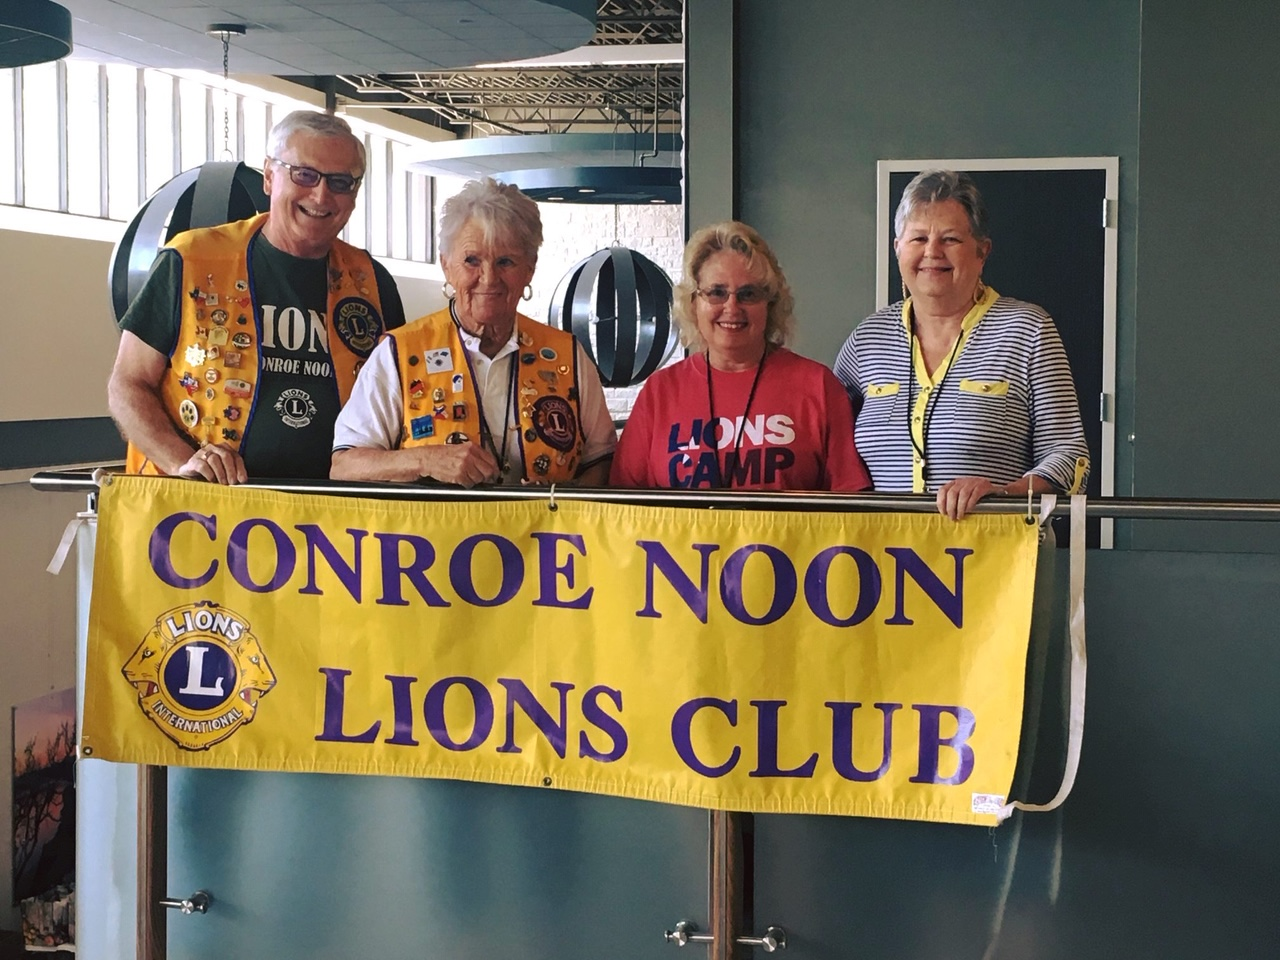 conroe noon lions club vision screening